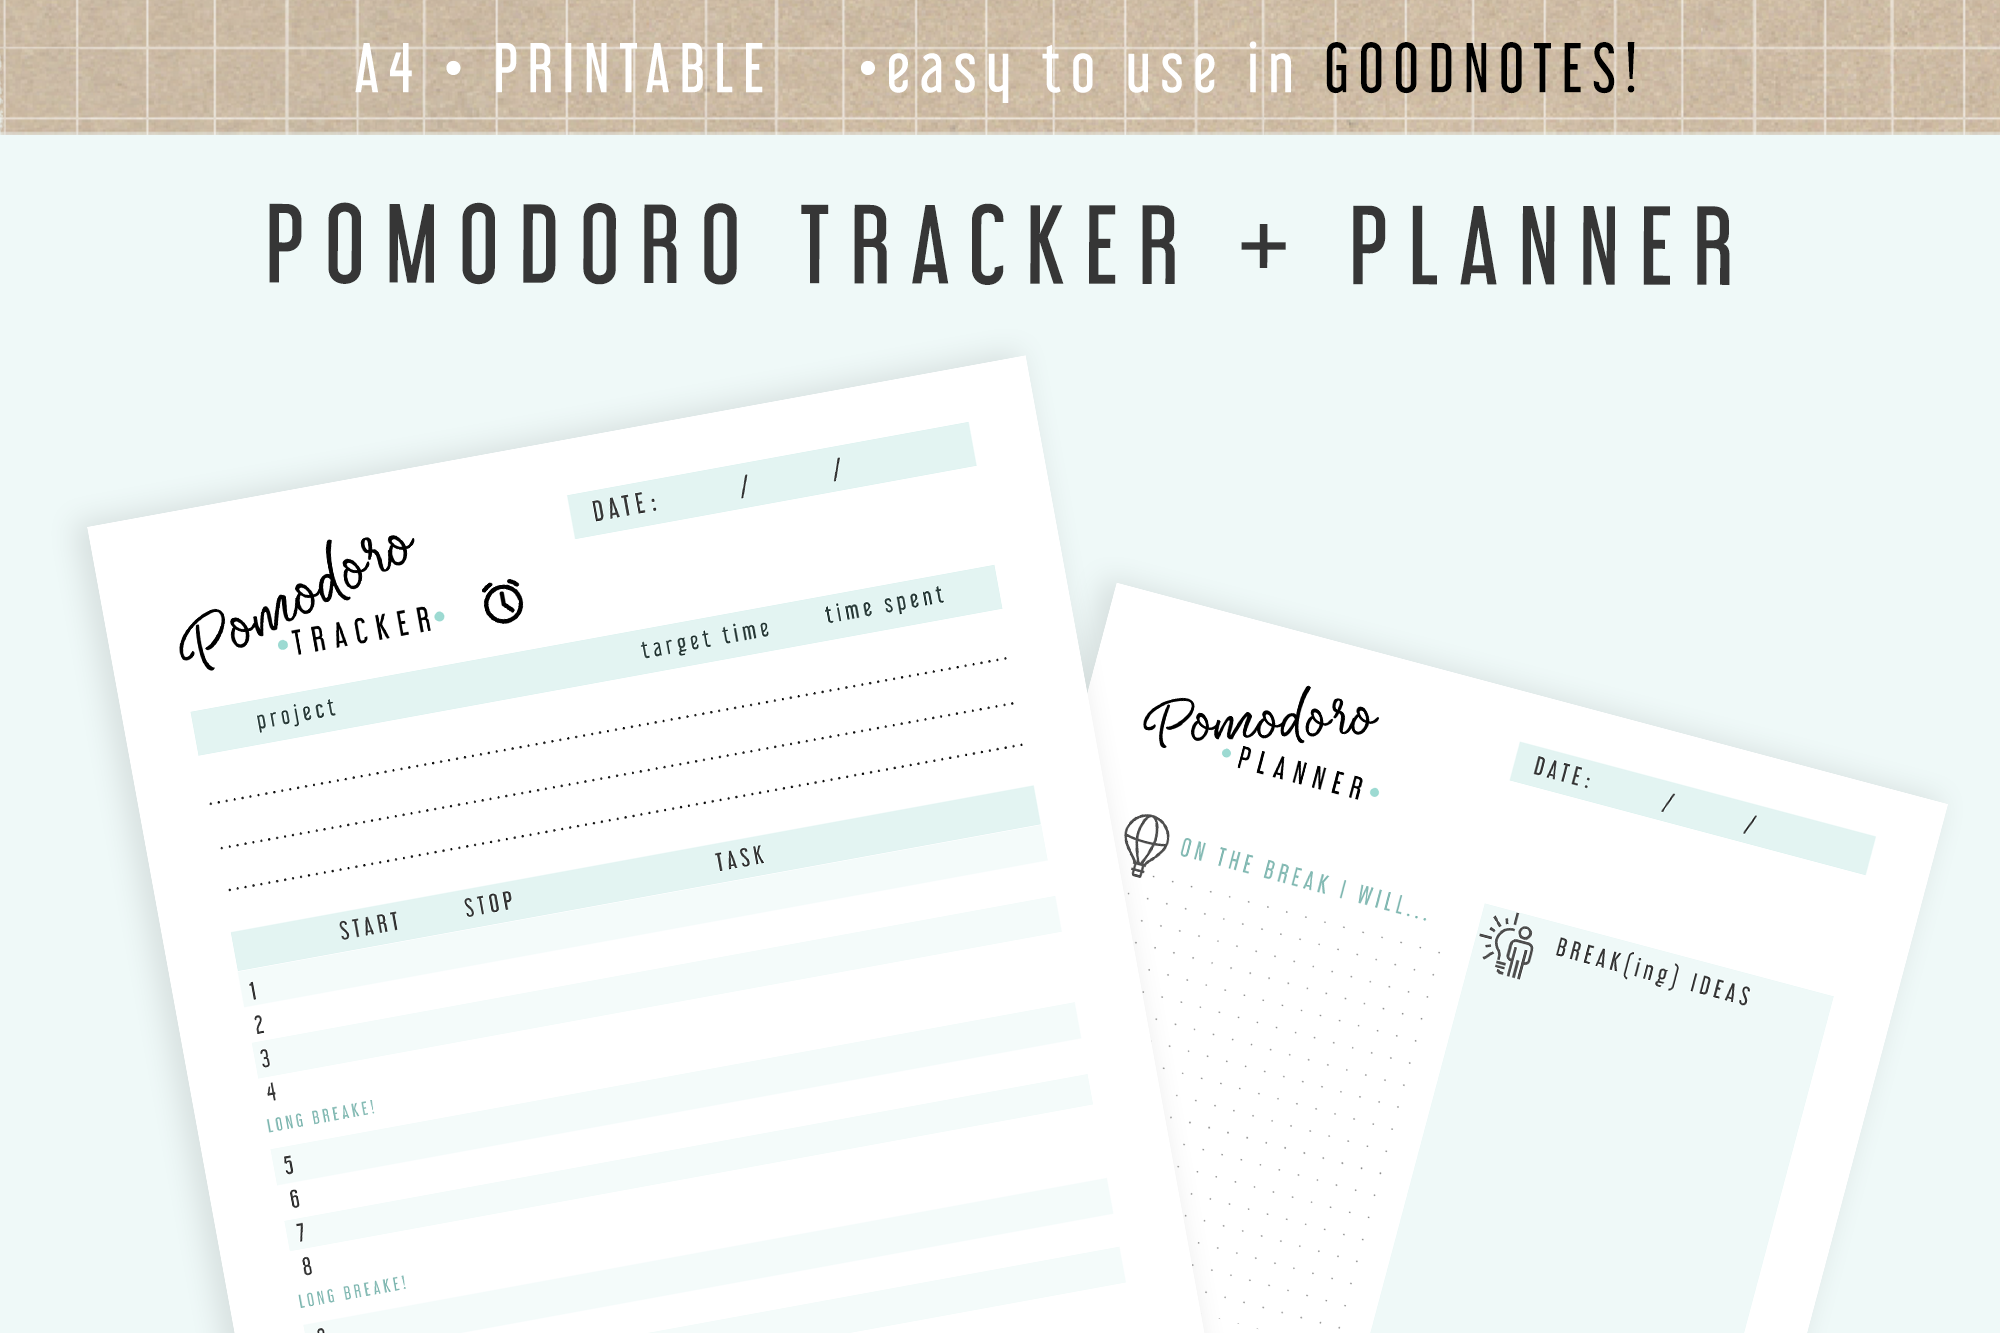 photo regarding Planner Printable named Pomodoro Planner Printable GoodNotes Keep track of Venture Aims